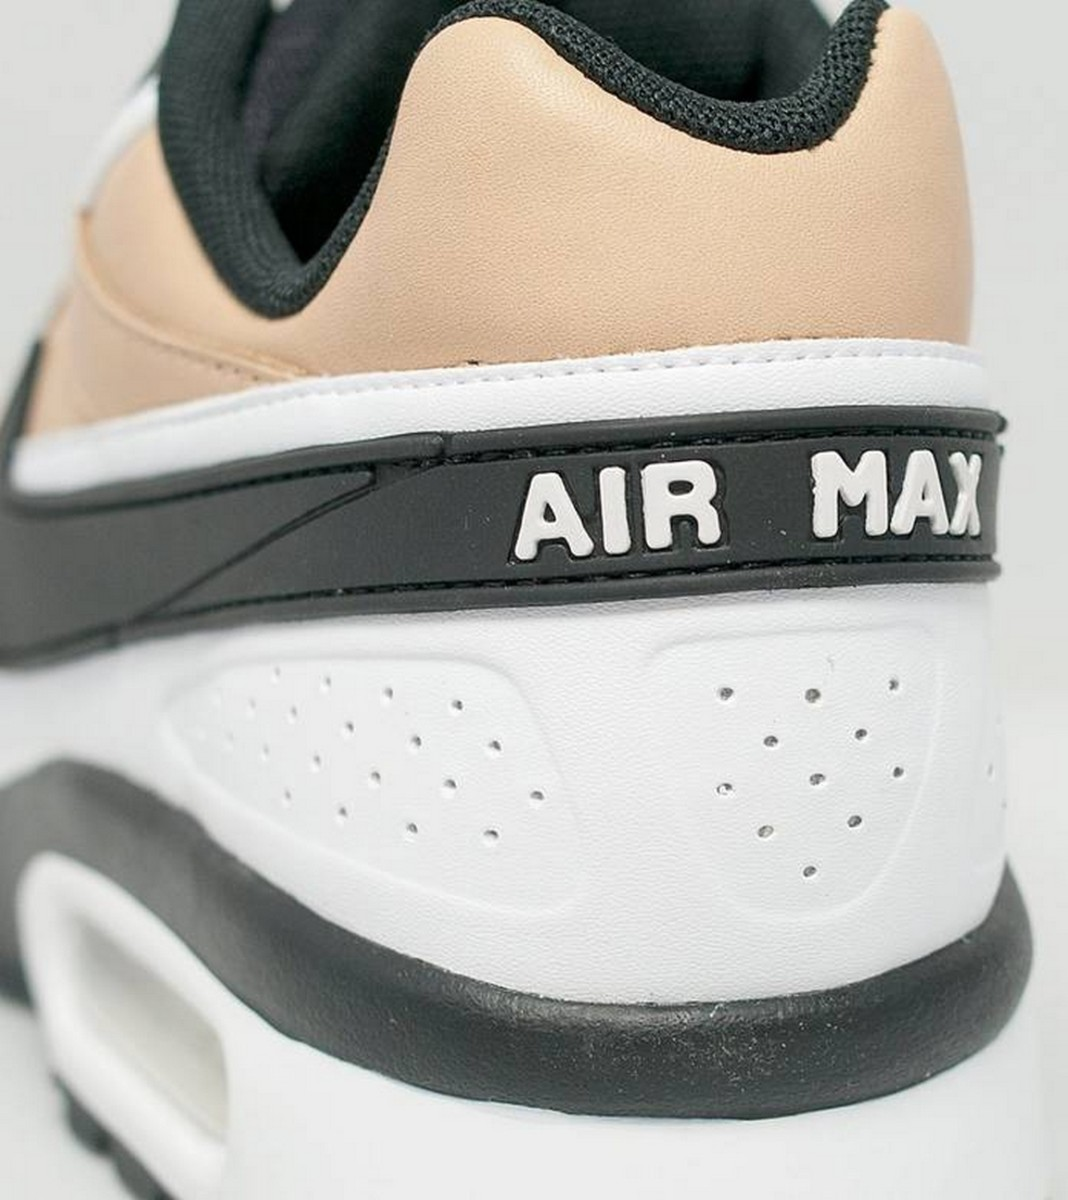 the-nike-air-max-bw-vachetta-delivers-buttery-tan-leather-6